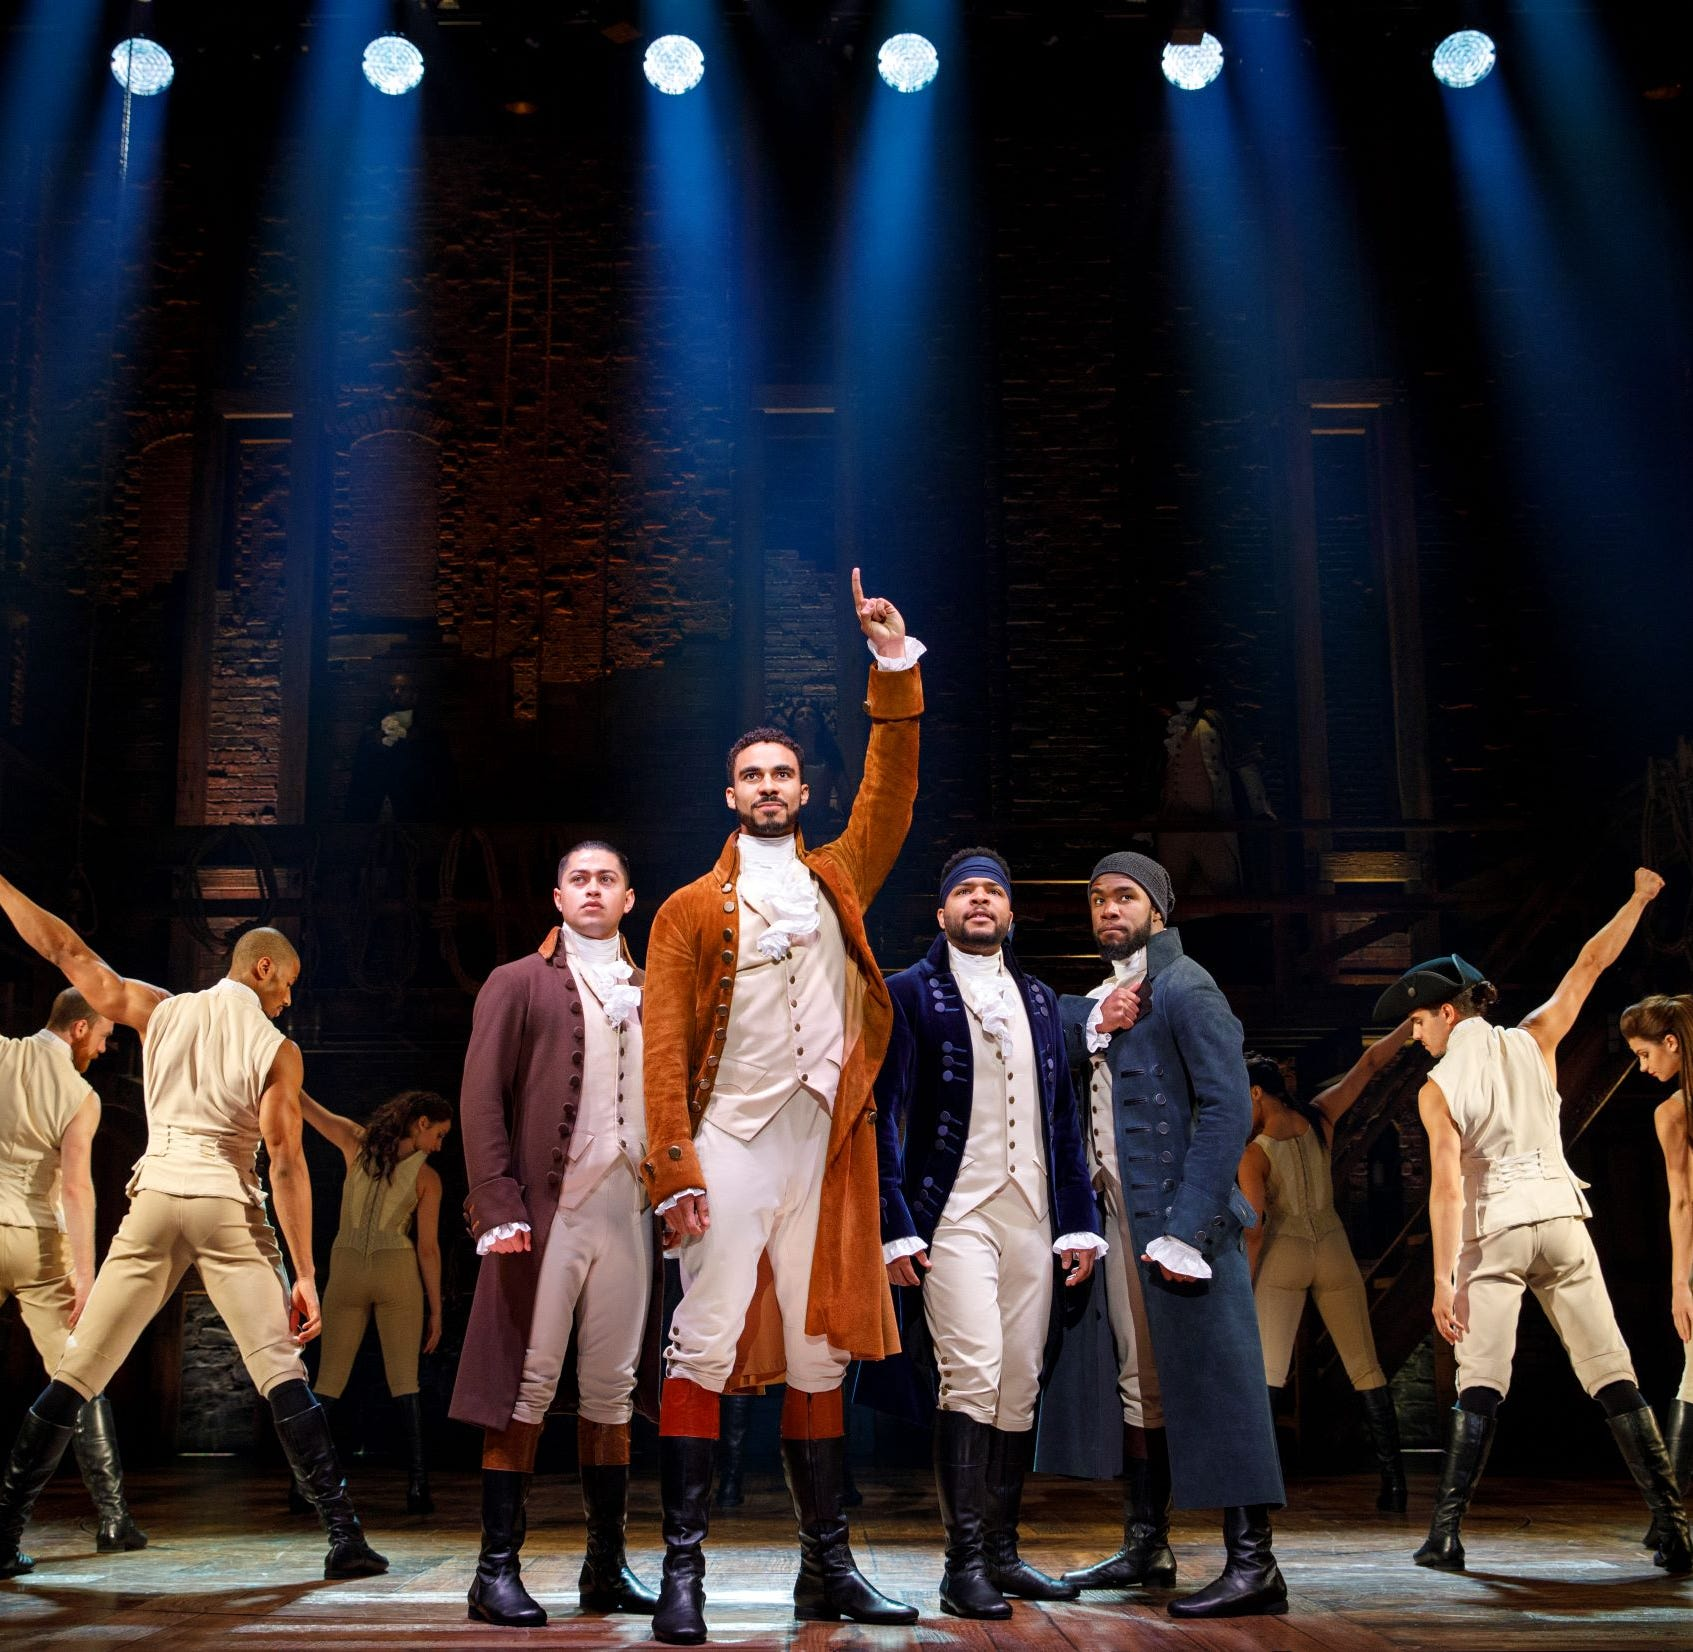 ALERT: You can score 'Hamilton' tickets for $10 in this digital lottery